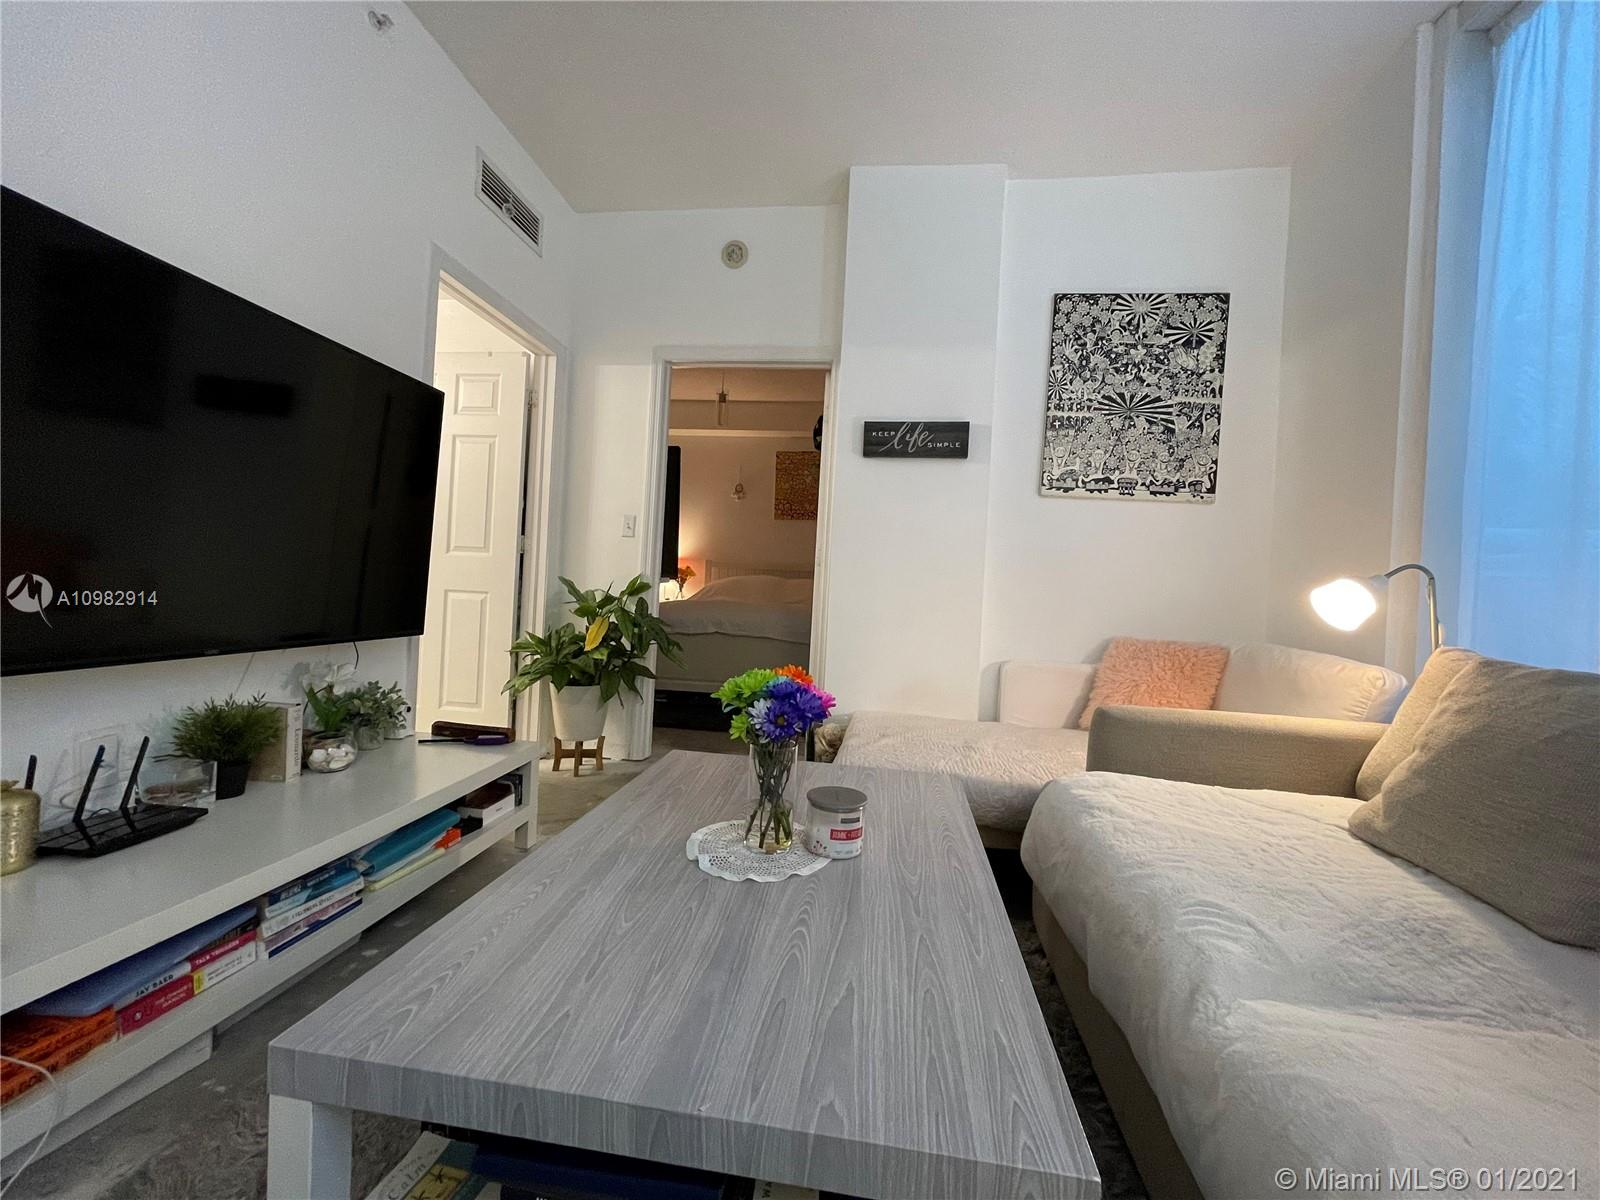 275 NE 18th St # 406, Miami, Florida 33132, 1 Bedroom Bedrooms, ,1 BathroomBathrooms,Residential,For Sale,275 NE 18th St # 406,A10982914